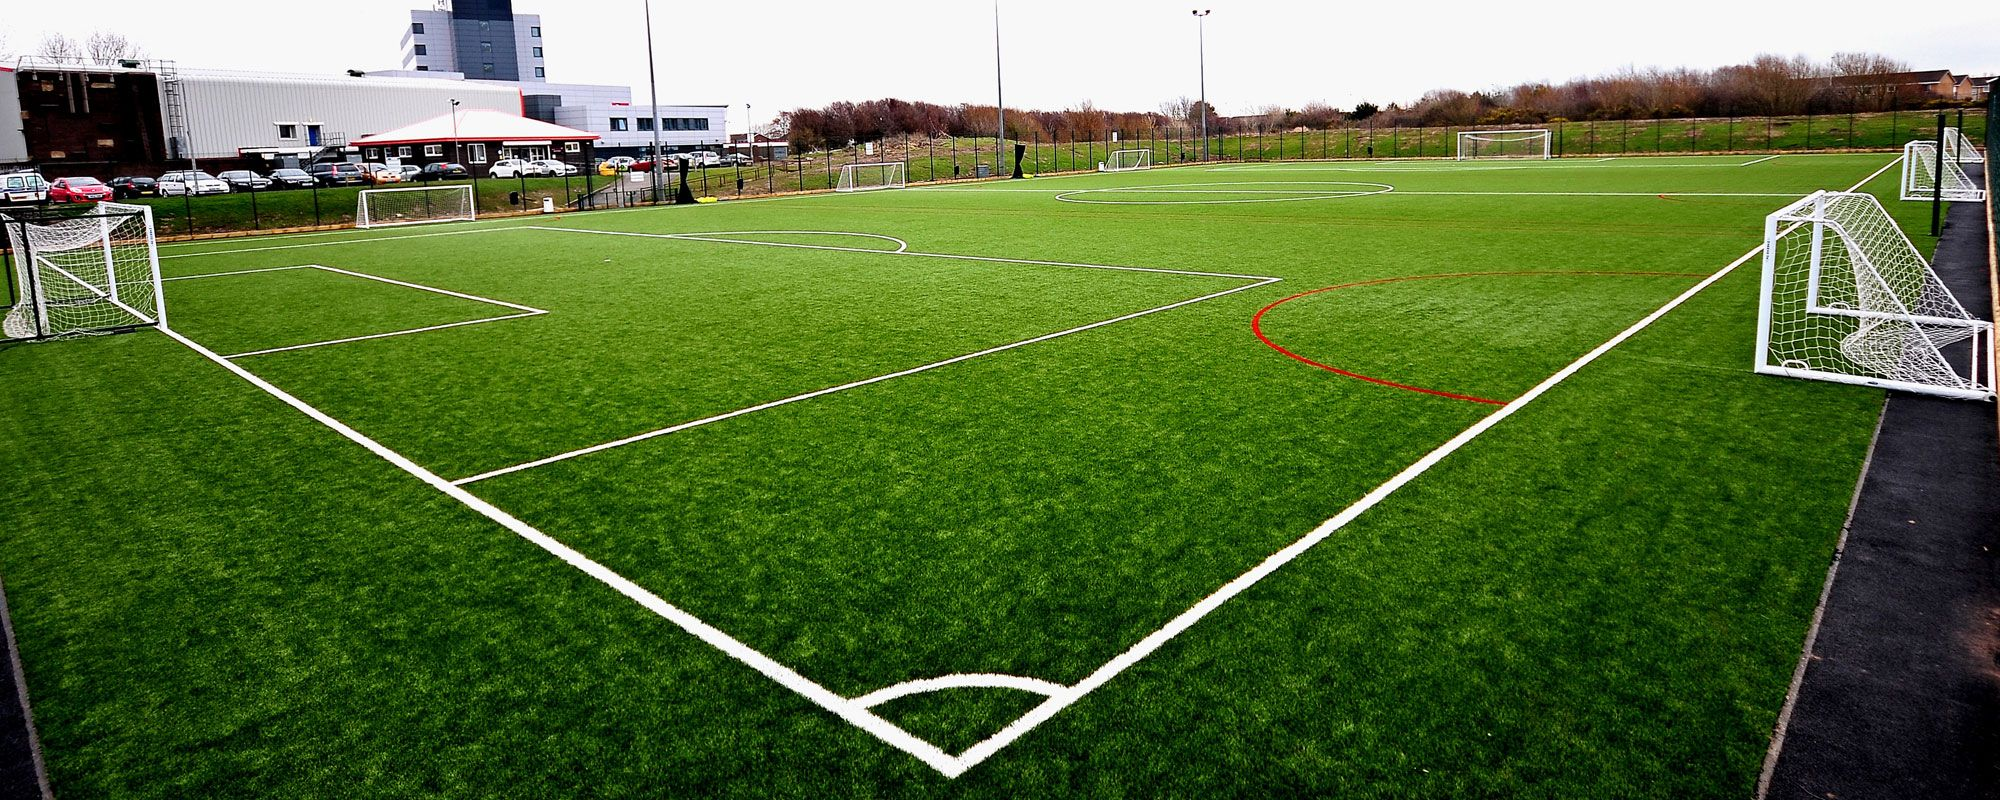 Football pitch in Blackpool used by Score Leisure for 5, 6 & 7-A-Side